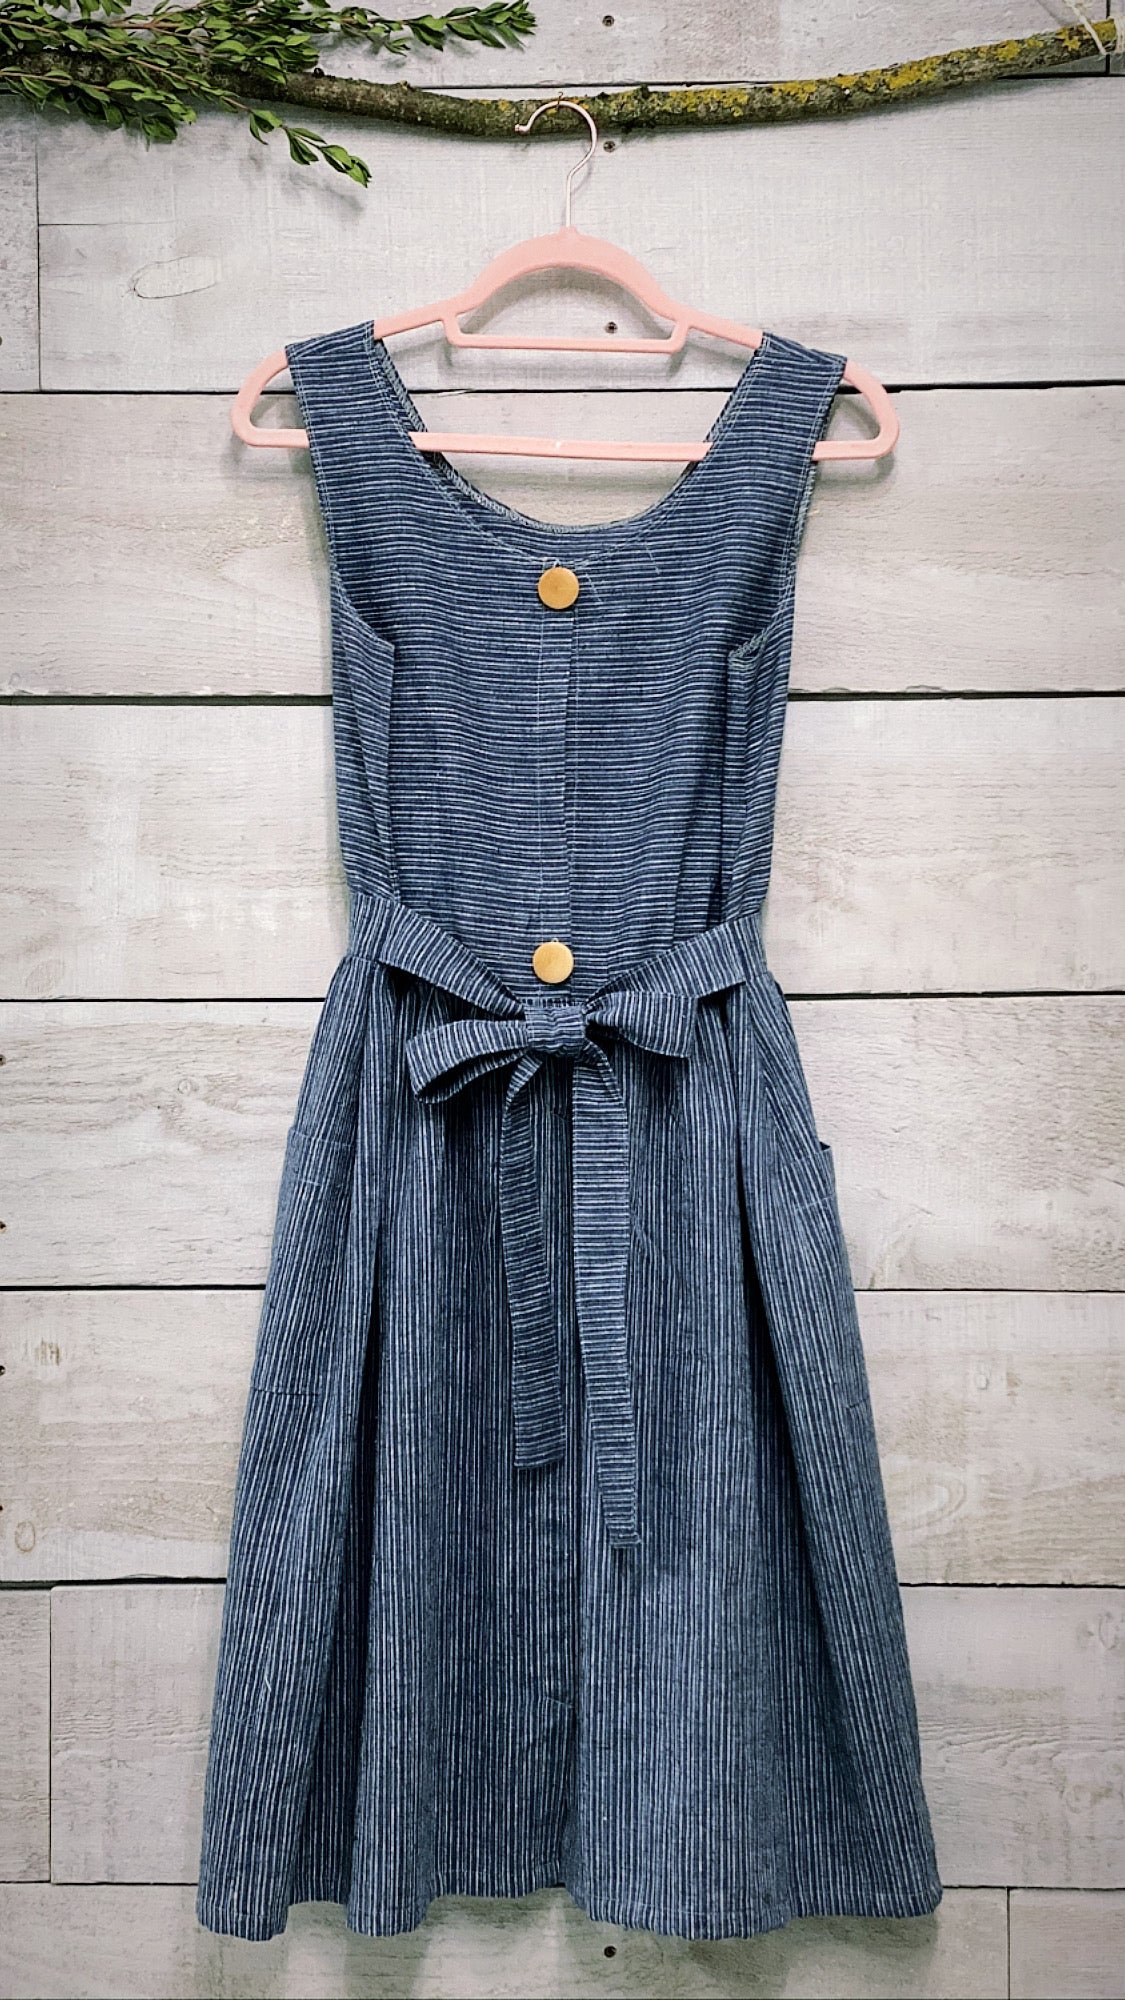 The Dress - Hemp Organic Cotton